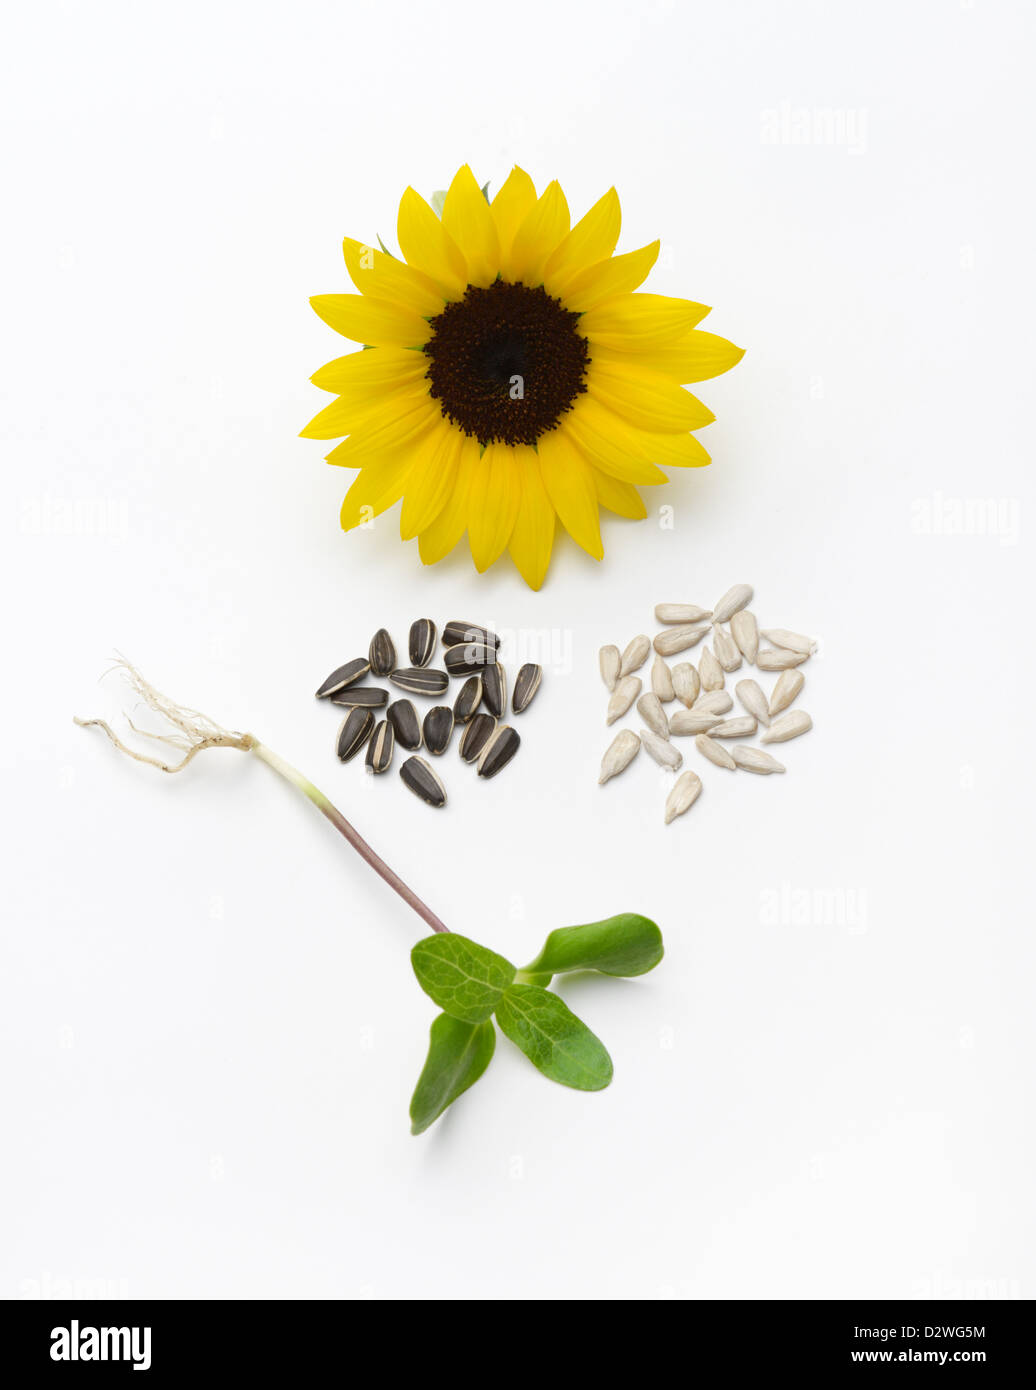 Sunflower Life Cycle With Seedling Seeds With Black Seed